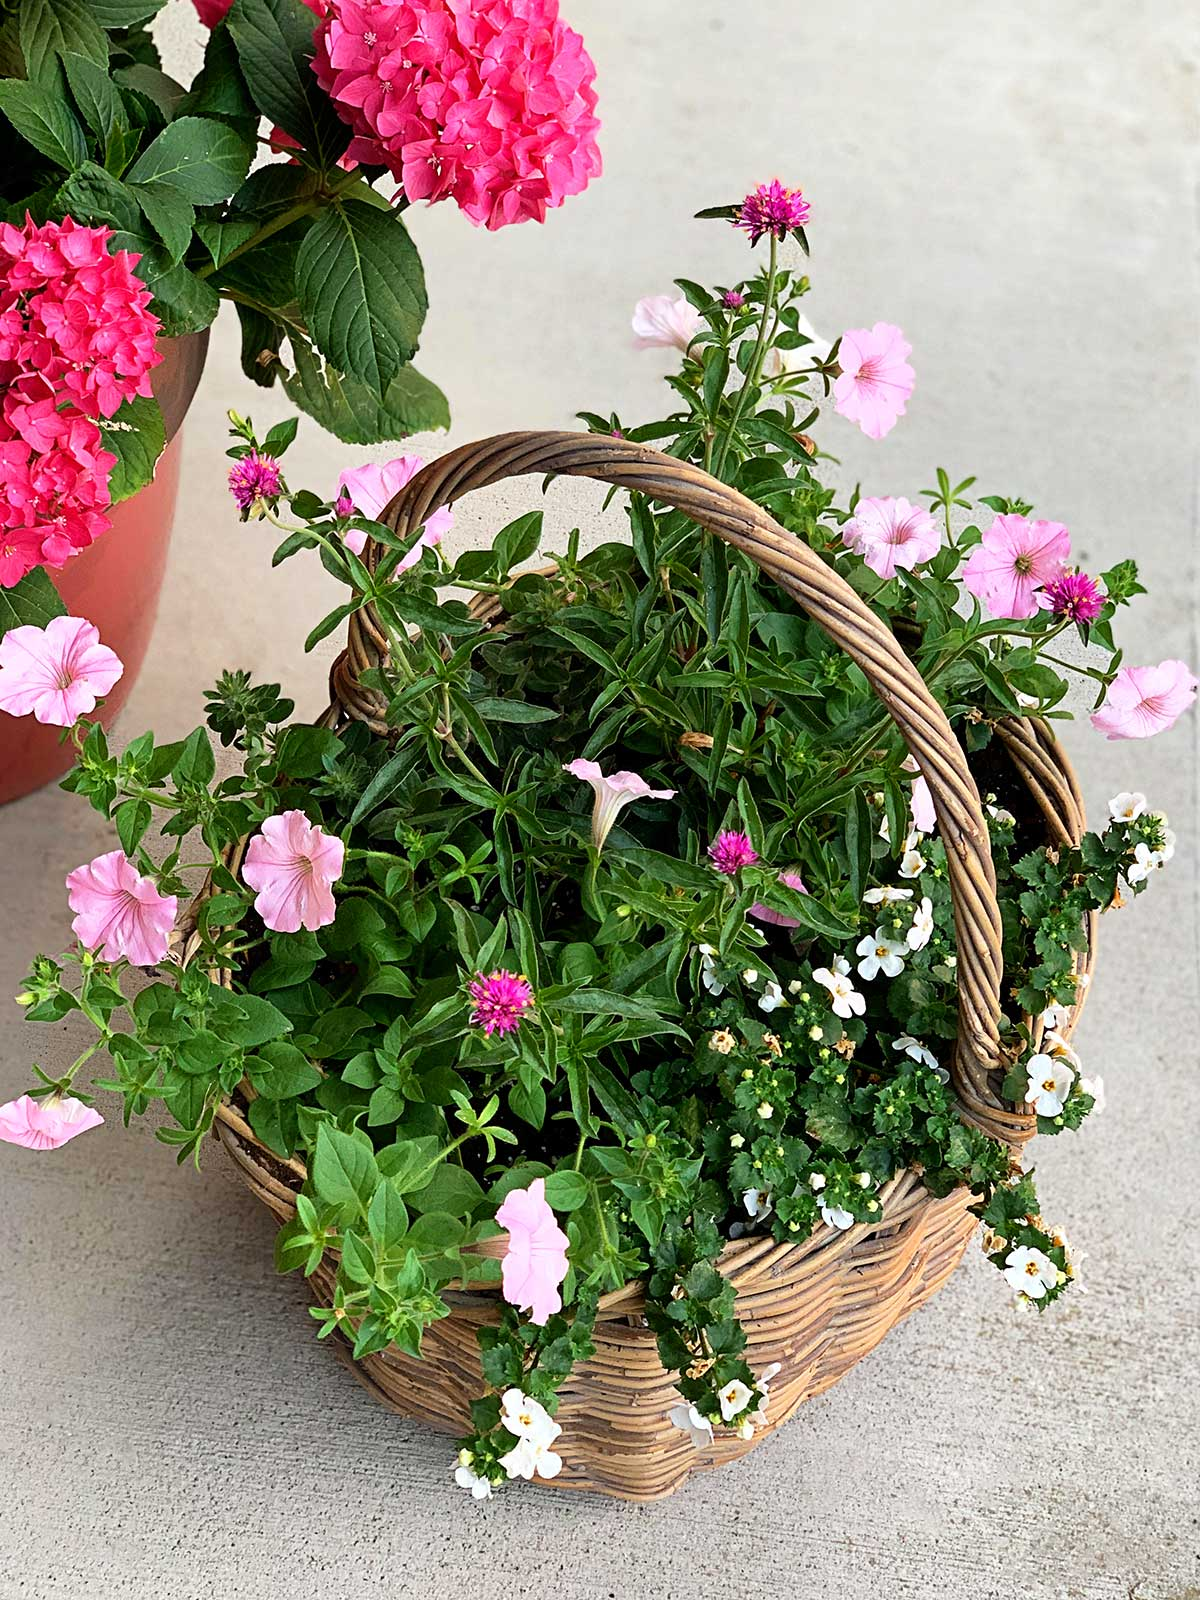 Gomphrena, Supertunia, Dwarf Morning Glory and Bacopa mixed container planted in a thrift store basket.